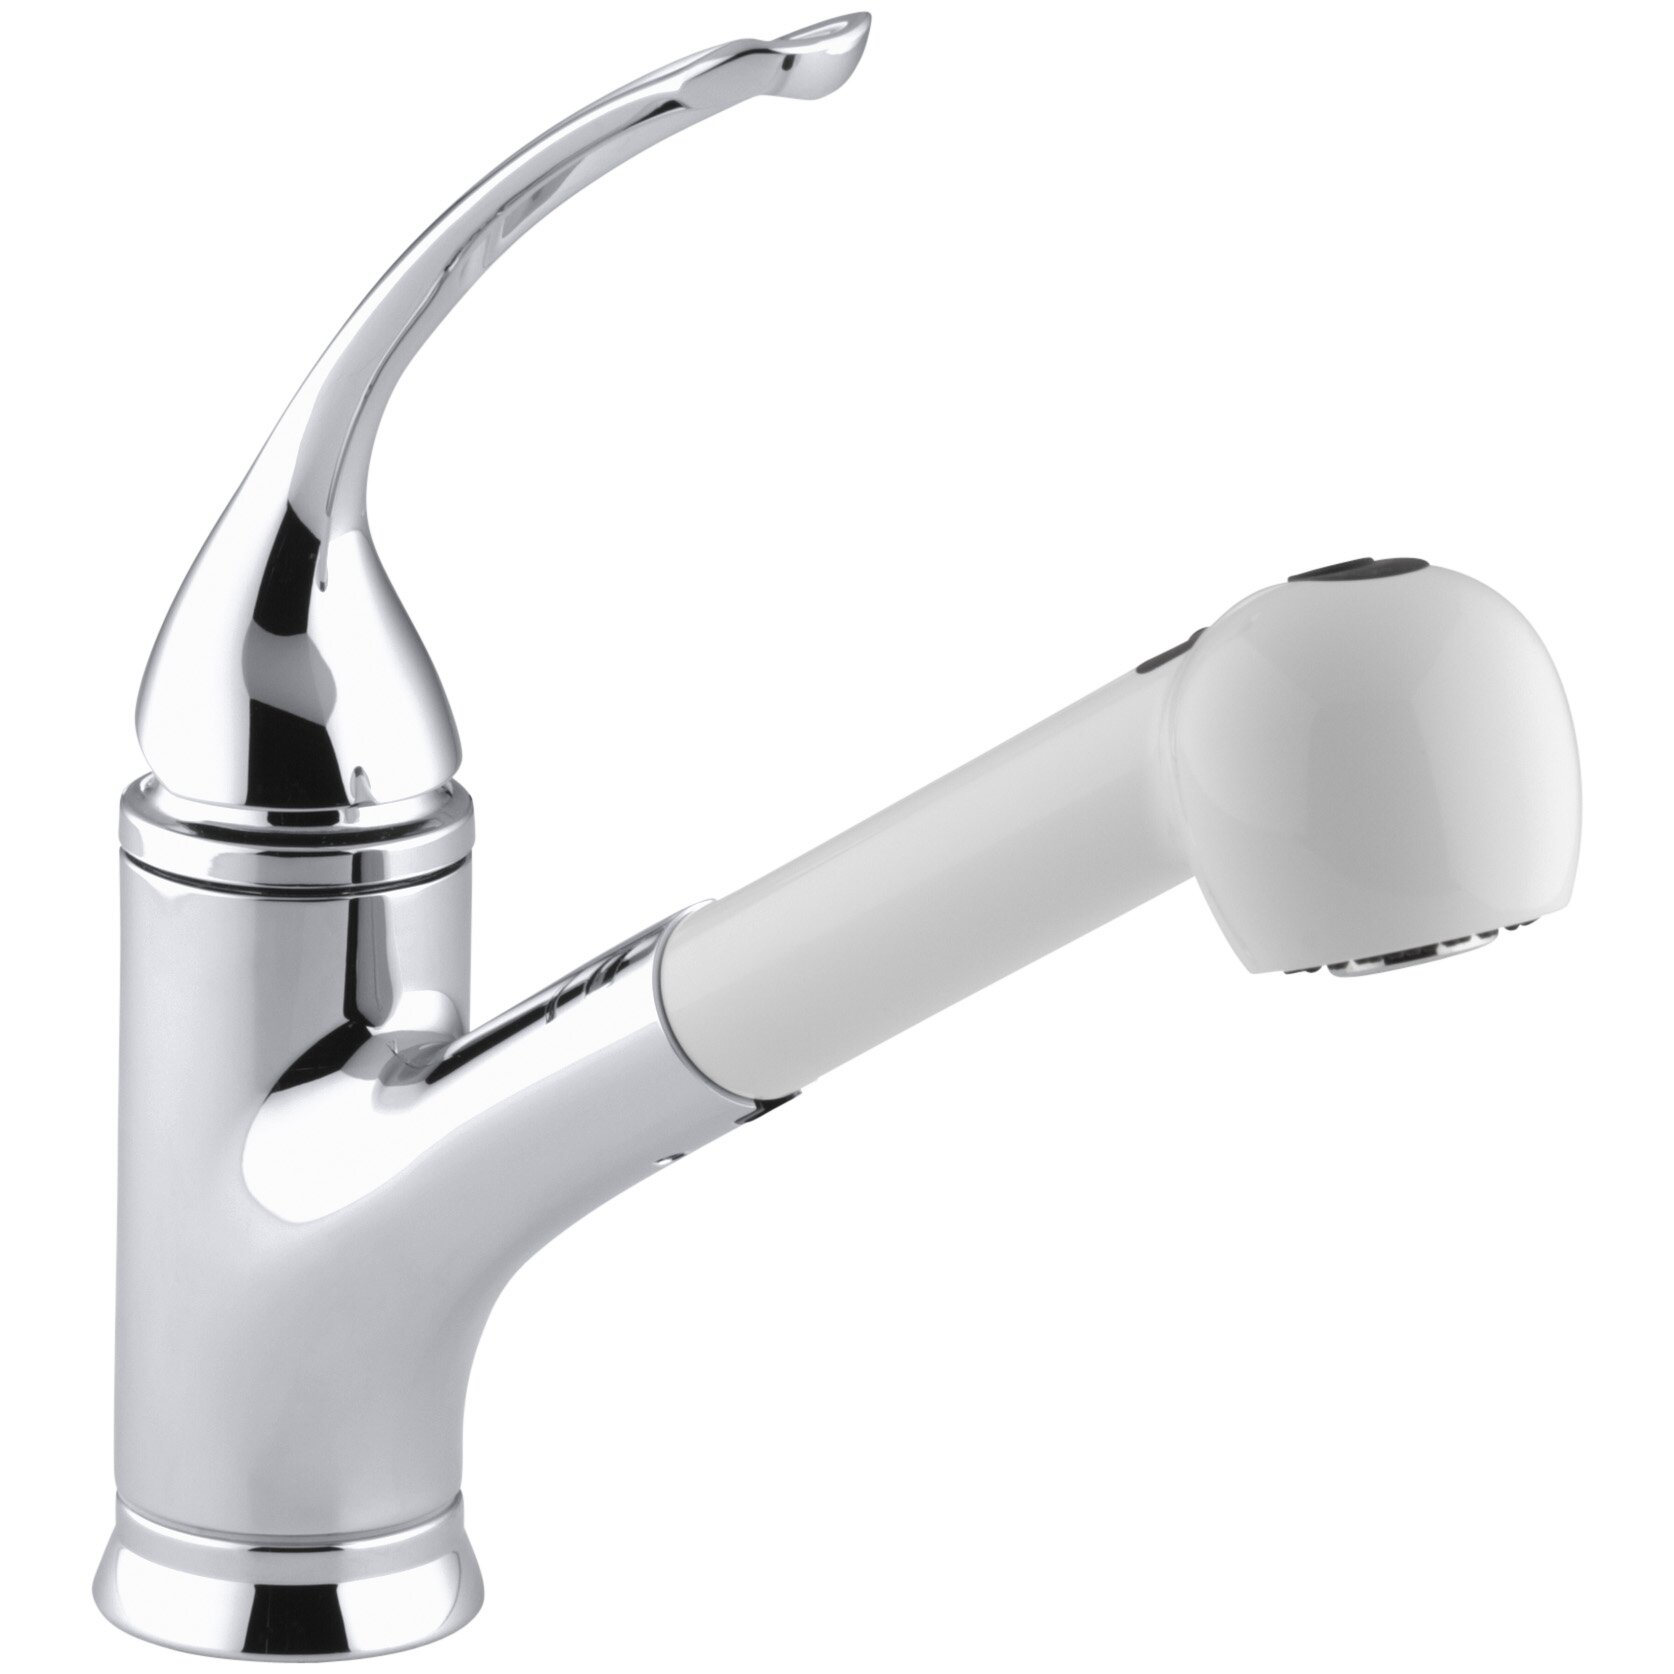 coralais single hole or three hole kitchen sink faucet with pullout